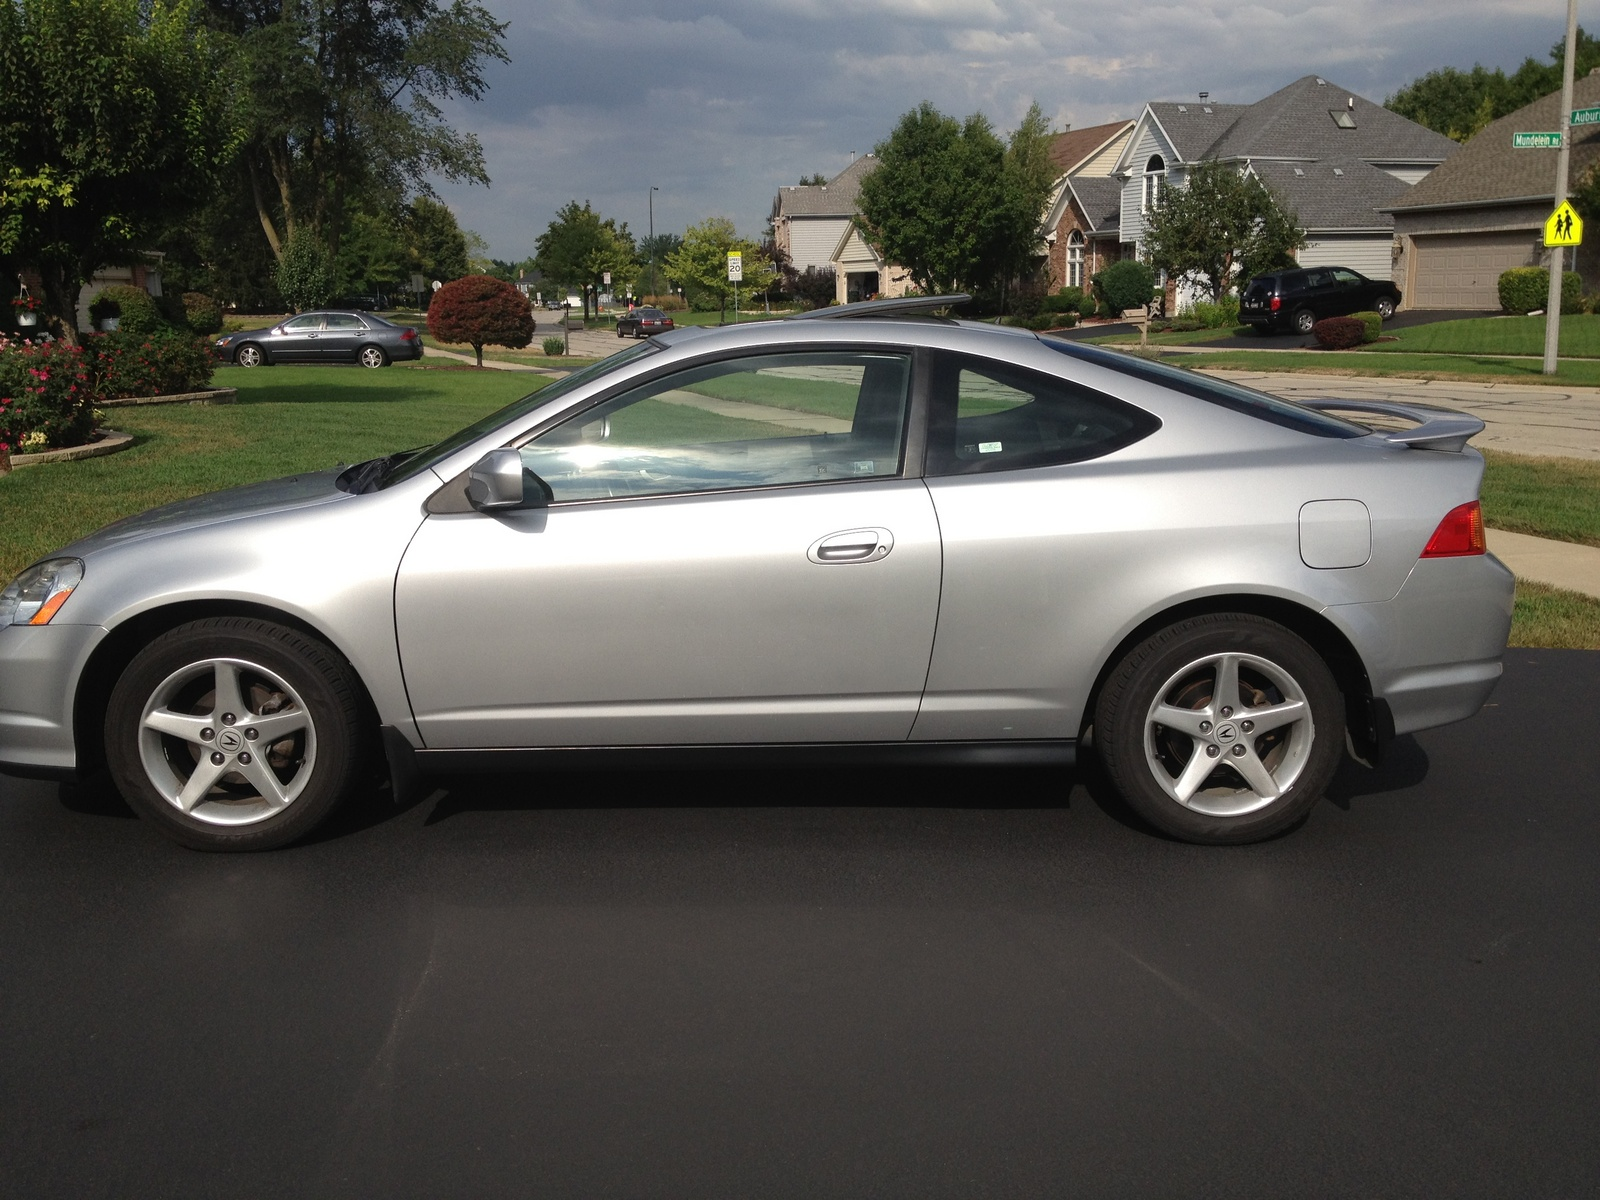 Dumped Fitted Jeralds Bagged Acura Rsx together with Showthread together with Aftermarket Steering Knuckles 2174880 furthermore Dashboard 41179130 further 180804 Help Semi Custom Interior. on 2002 acura integra